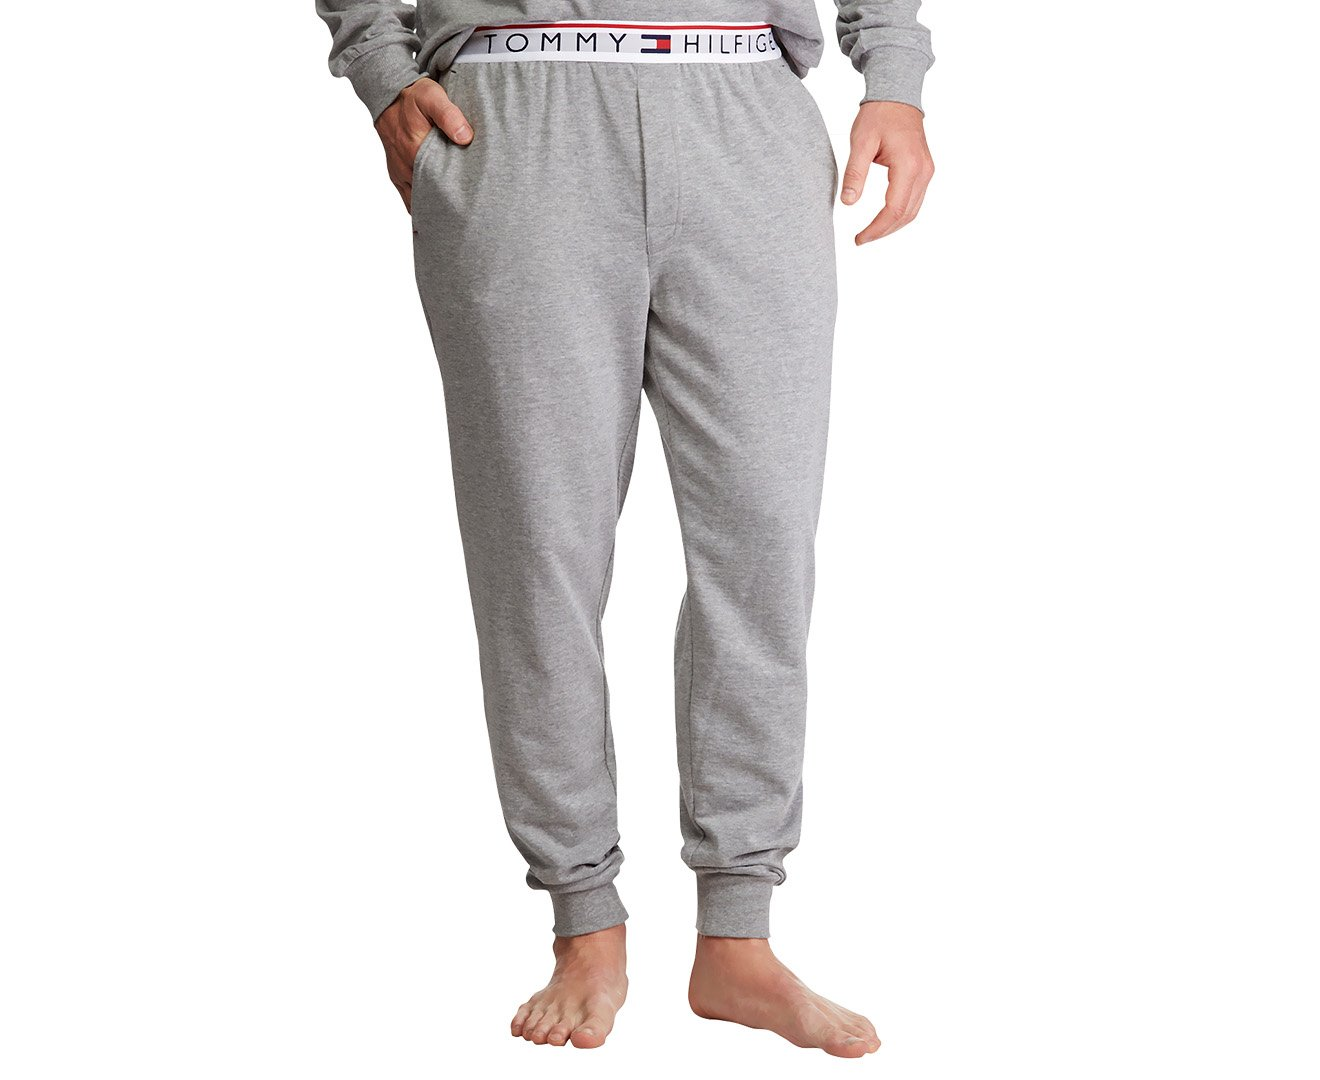 Tommy Hilfiger Men's Modern Essentials French Terry Jogger, Grey Heather/White, L